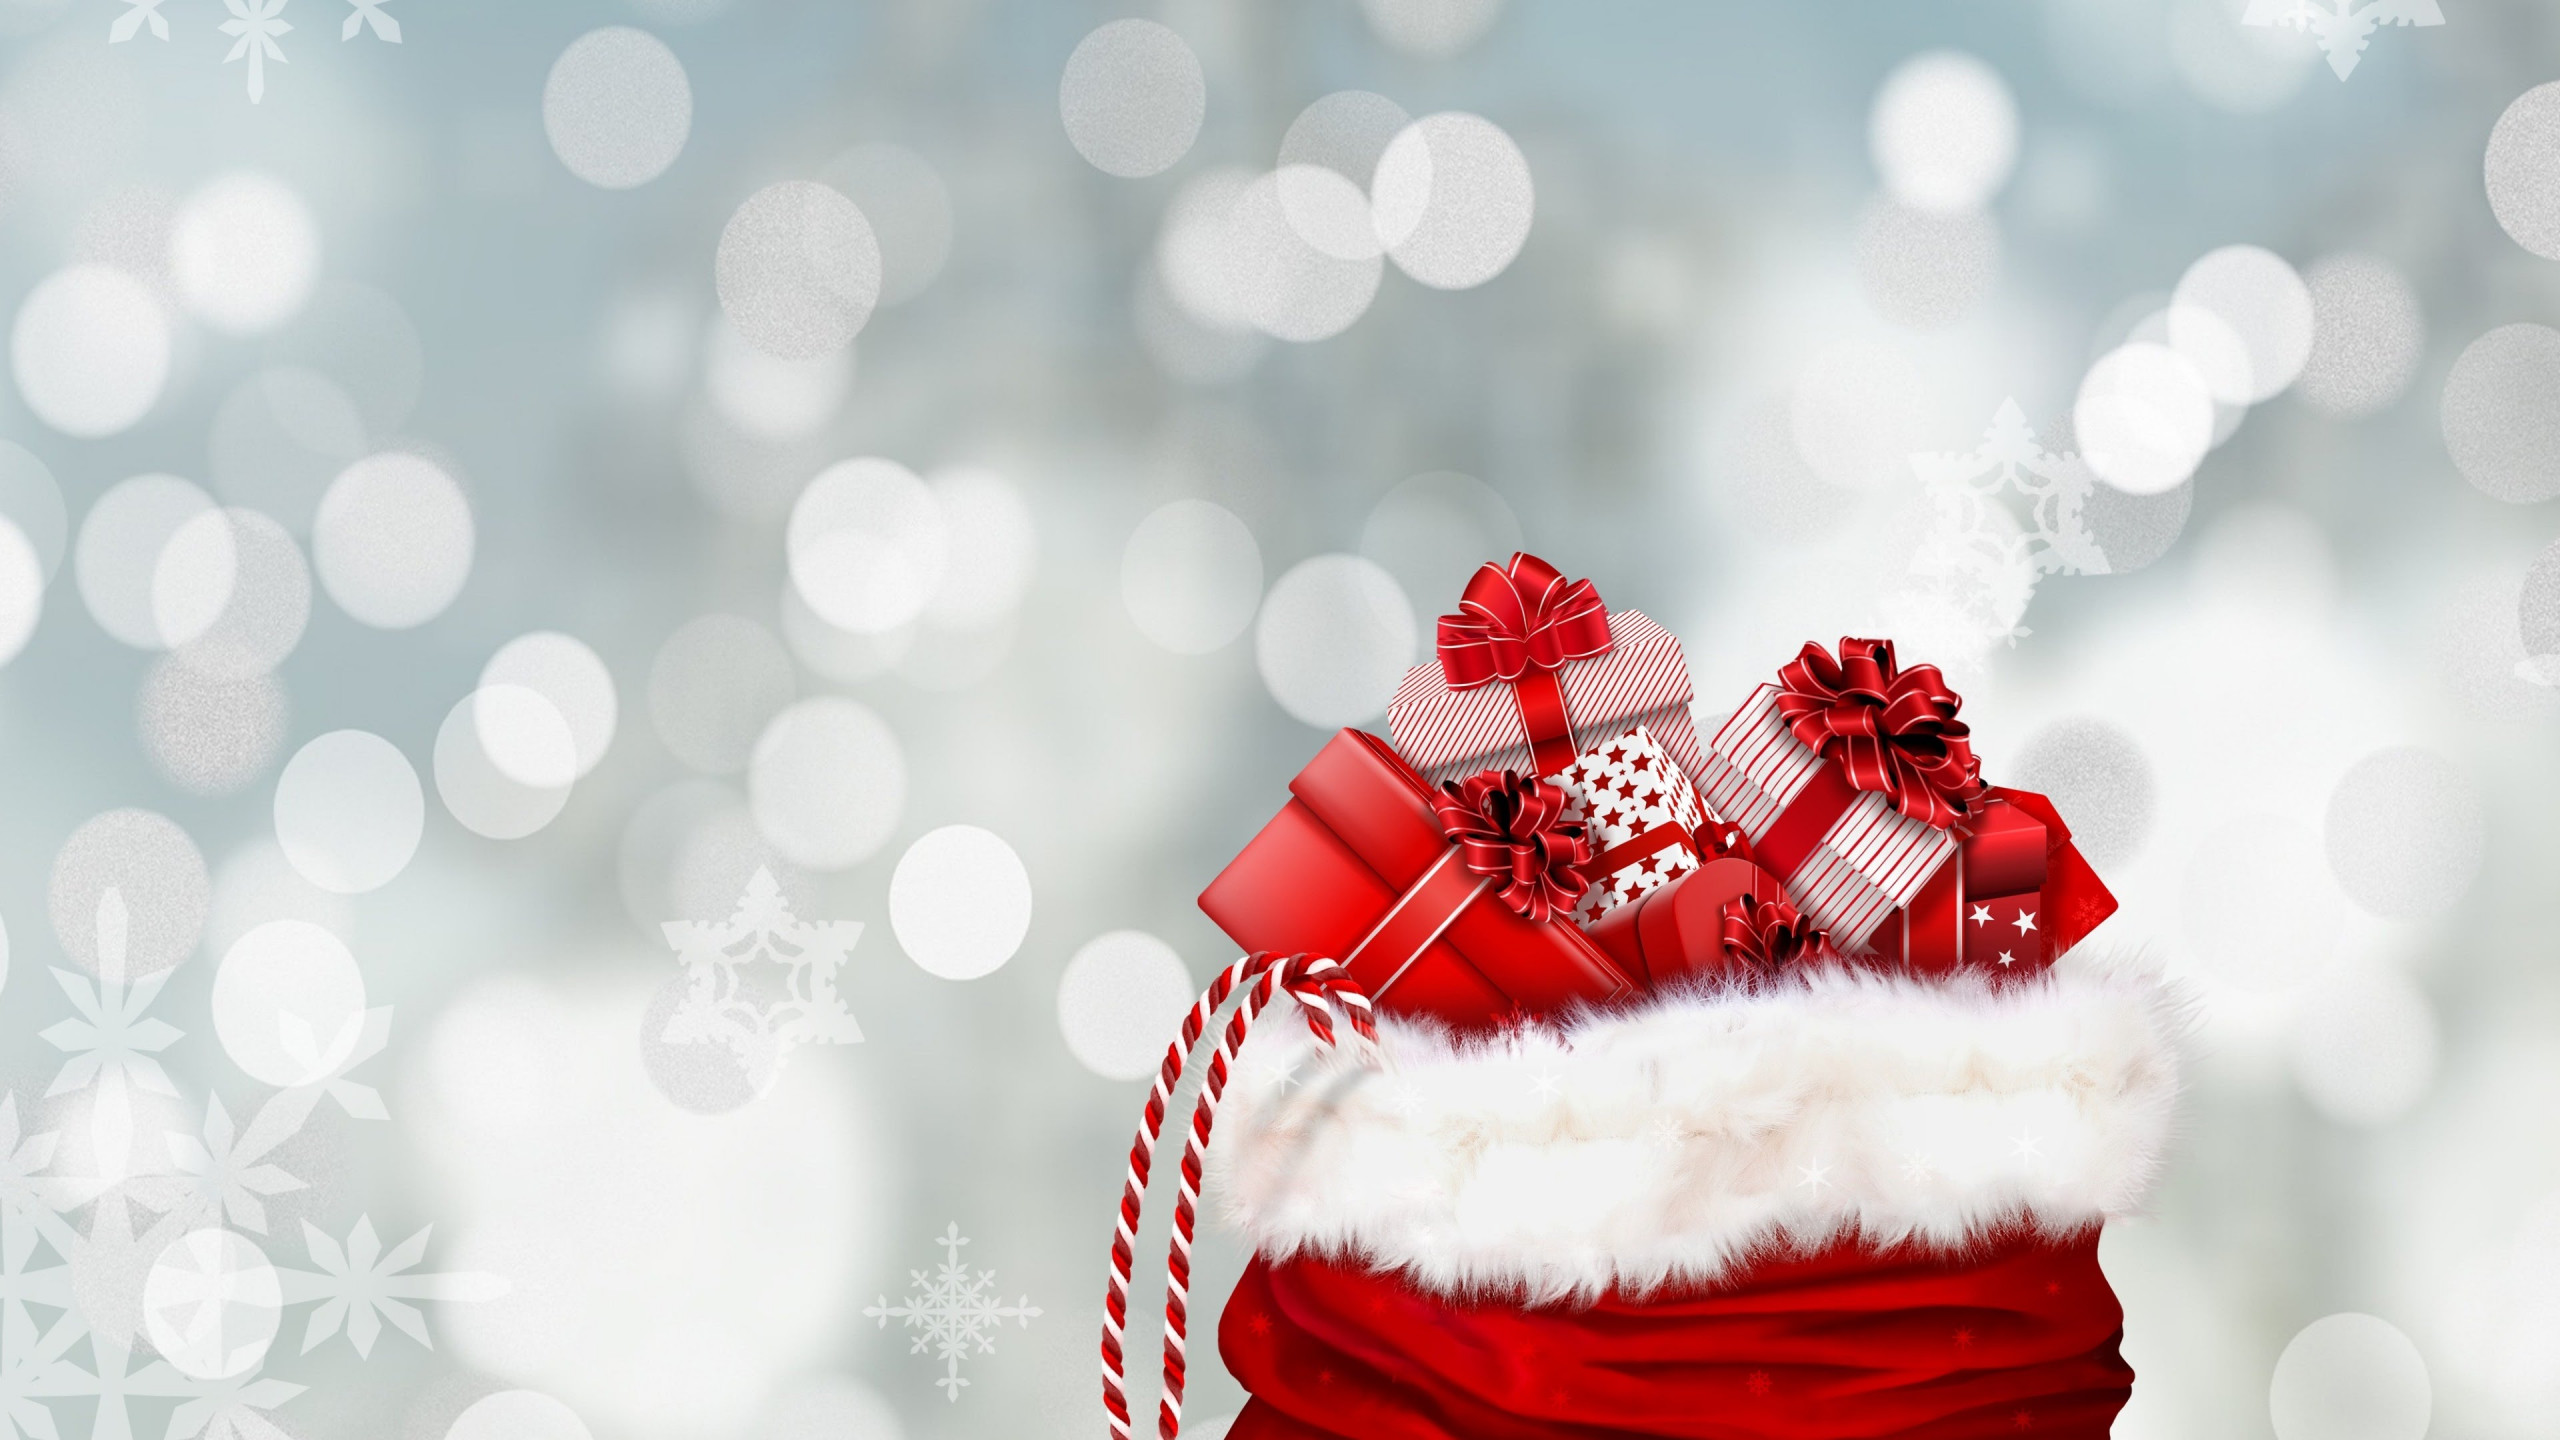 Bag with Christmas gifts wallpaper 2560x1440